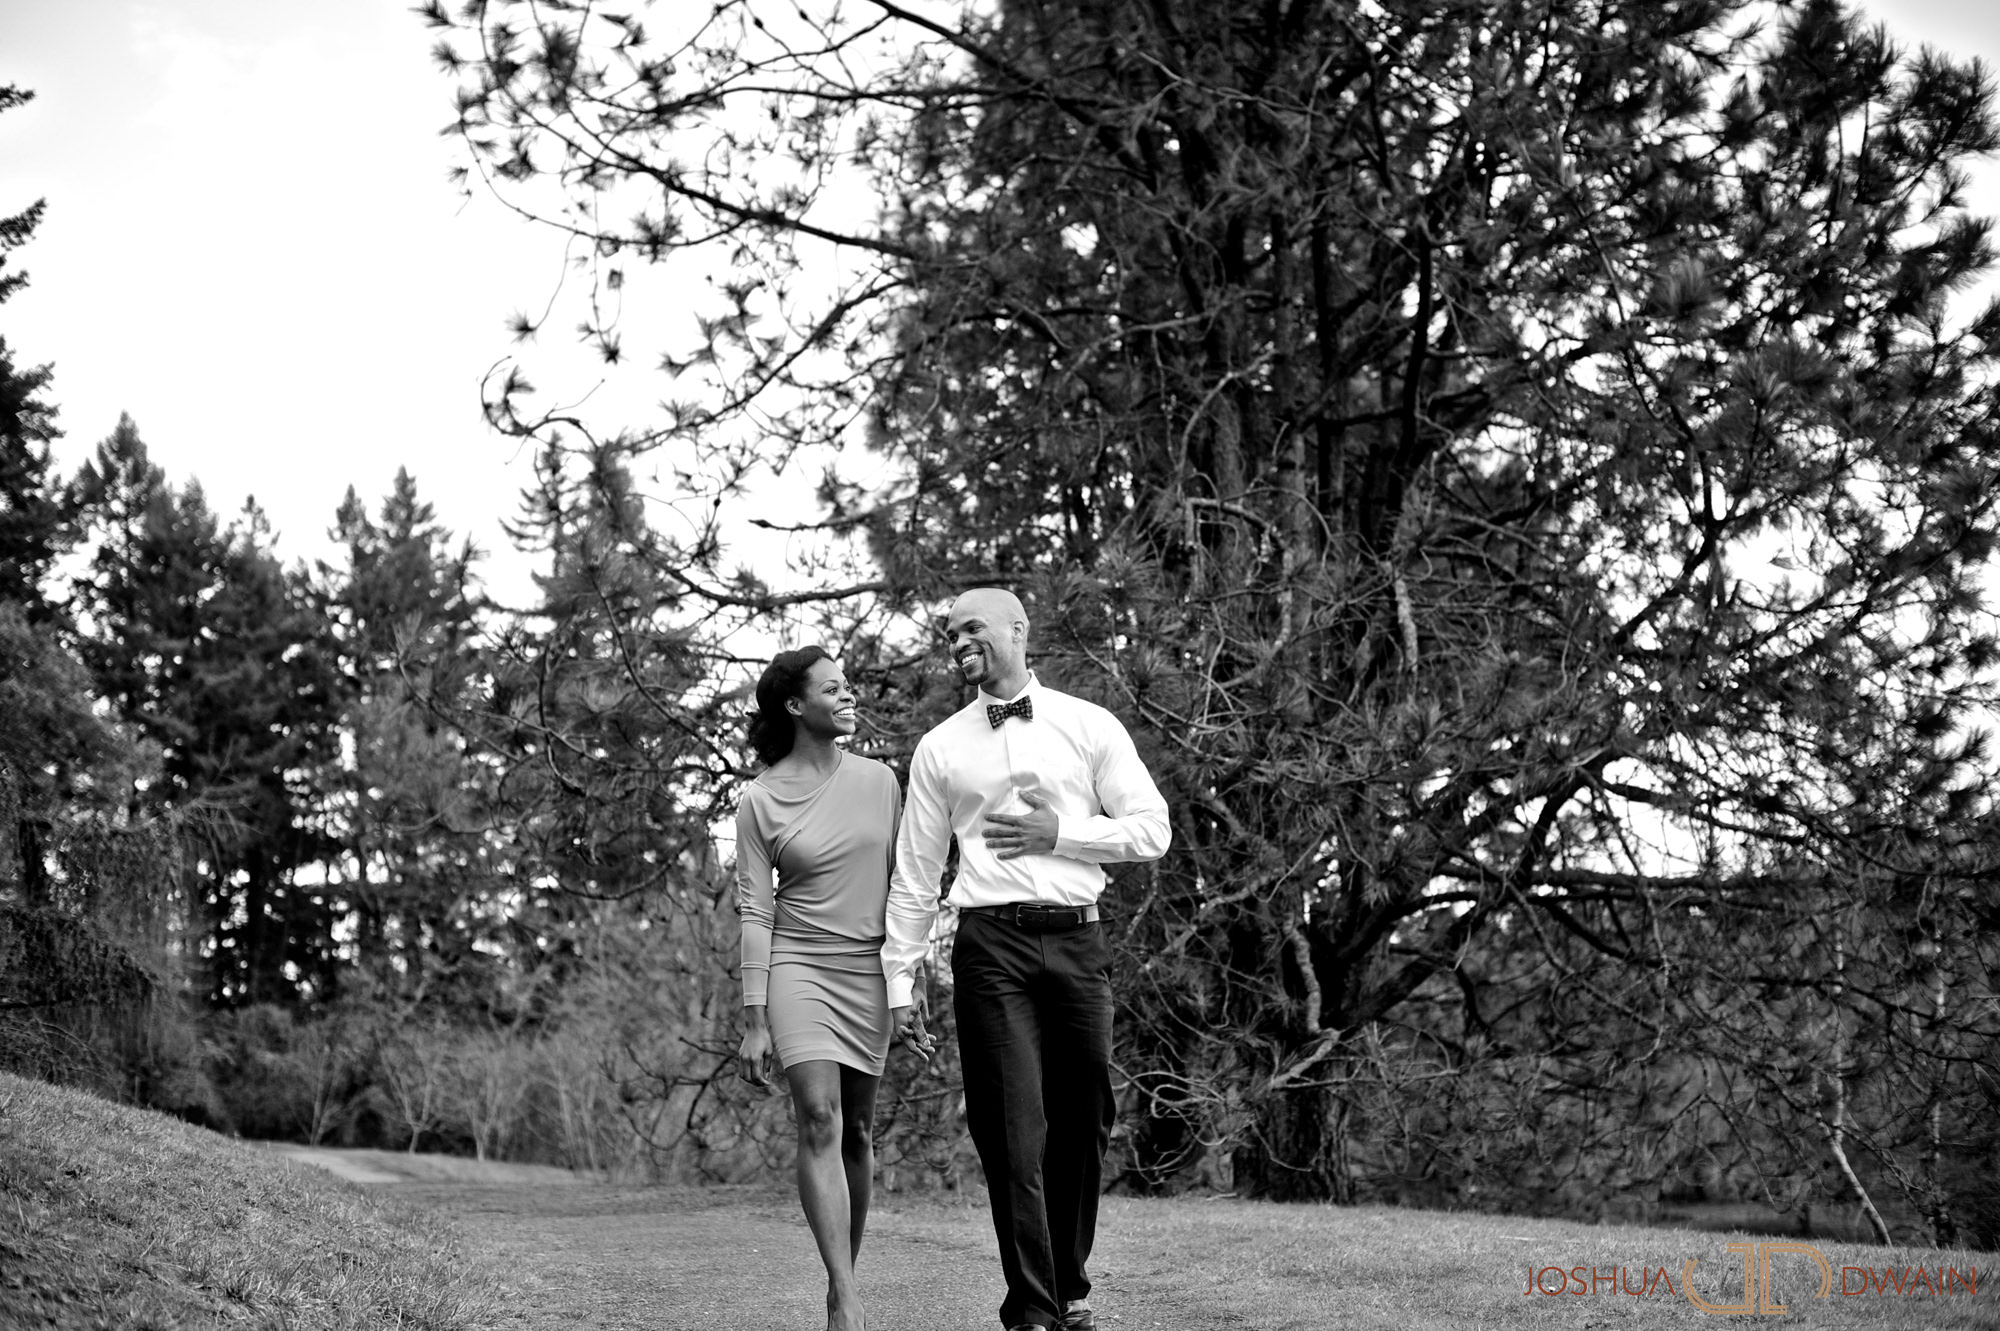 marnel-matthew--015-portland-oregon-engagement-photographer-joshua-dwain-20110305_mm_317